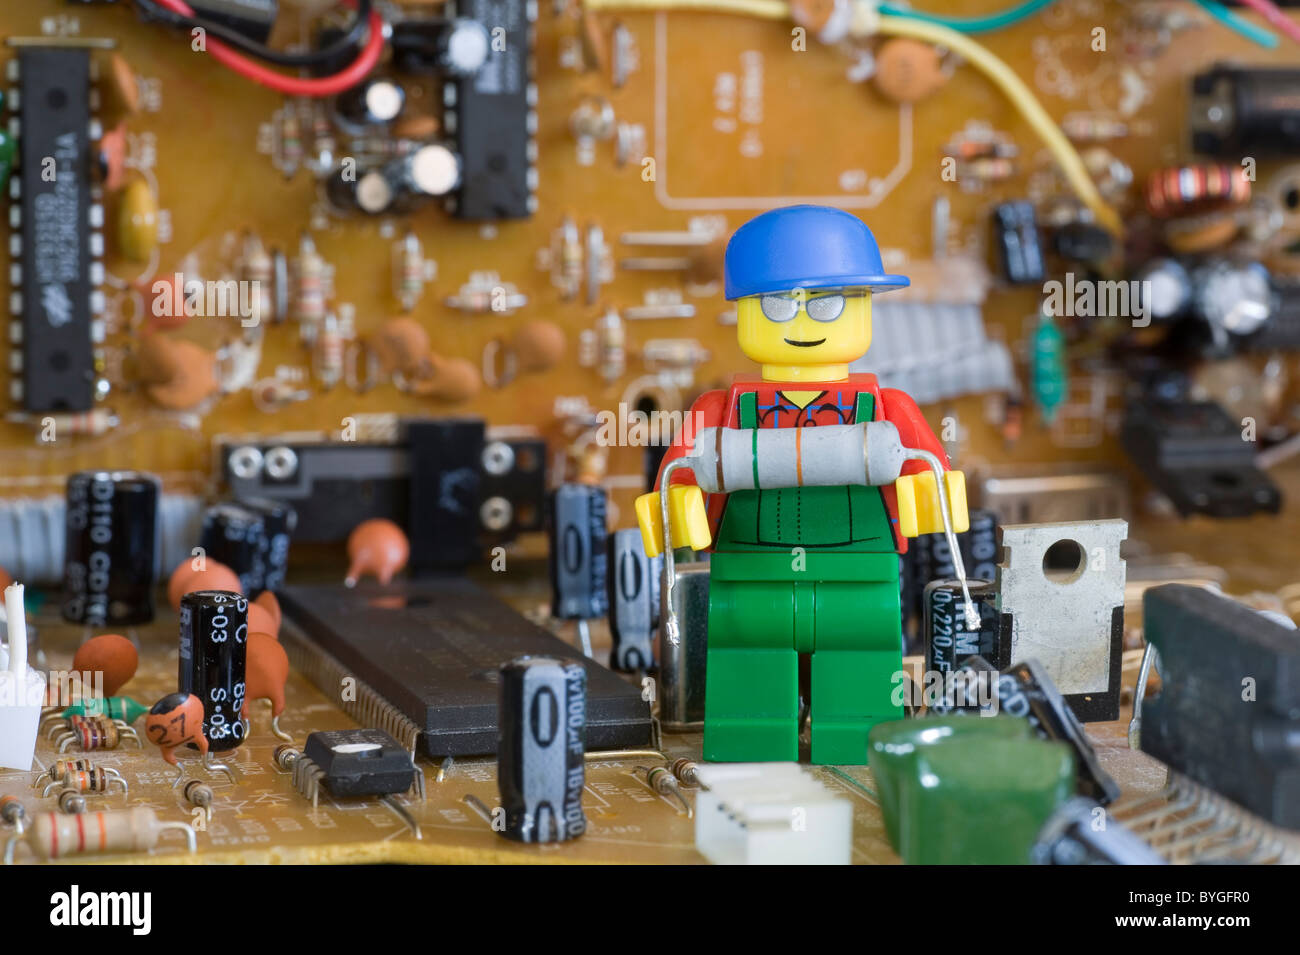 Lego engineer on an electronic circuit board holding an